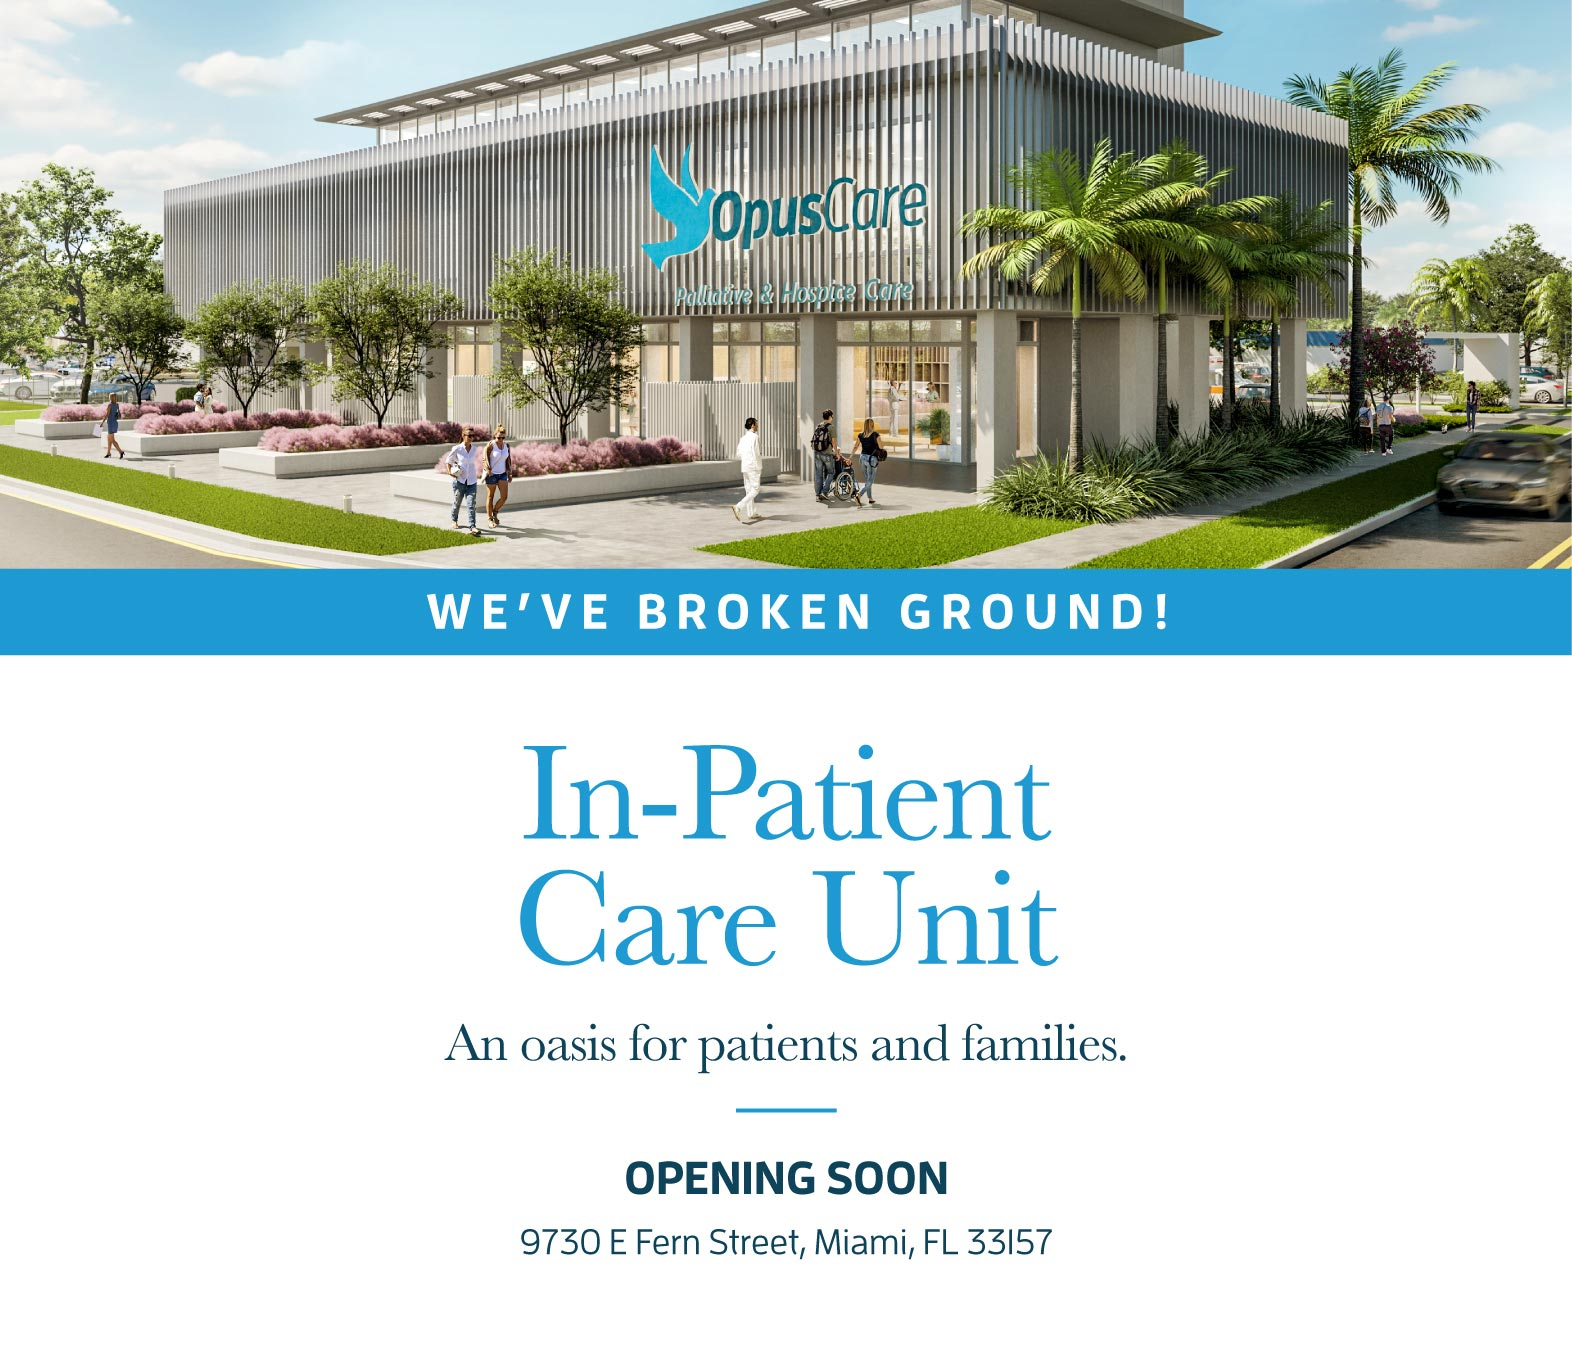 Banner: In-Patient Care Unit Groundbreaking Ceremony -- An oasis for patients and families -- Opening Soon -- 9730 E Fern Street, Miami, FL 33157 (Mobile)